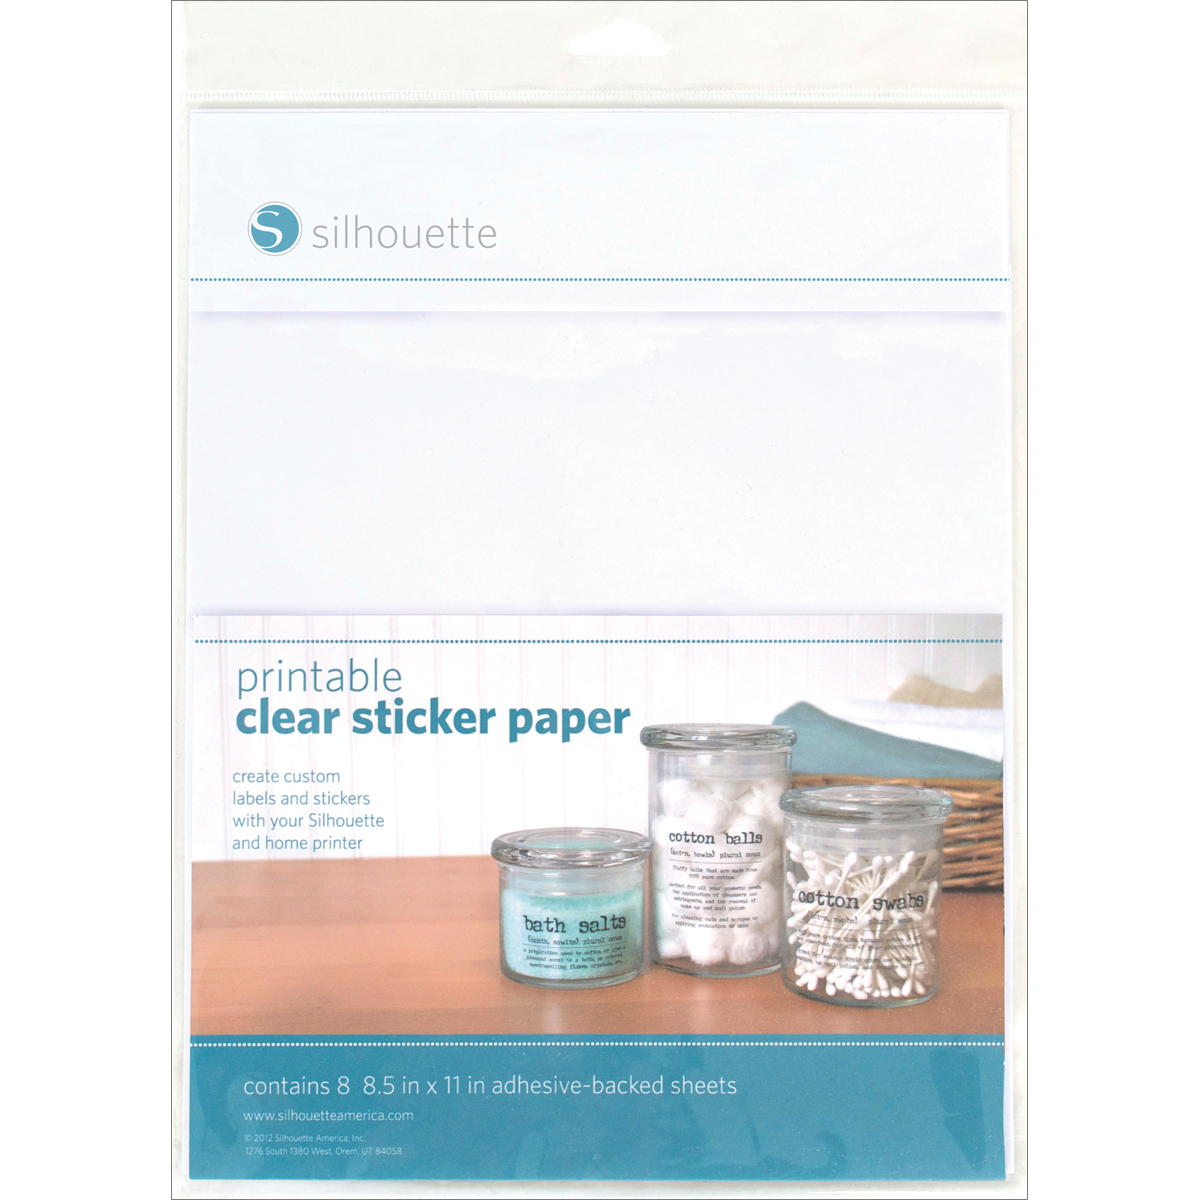 6 Images of Silhouette Clear Printable Sticker Paper